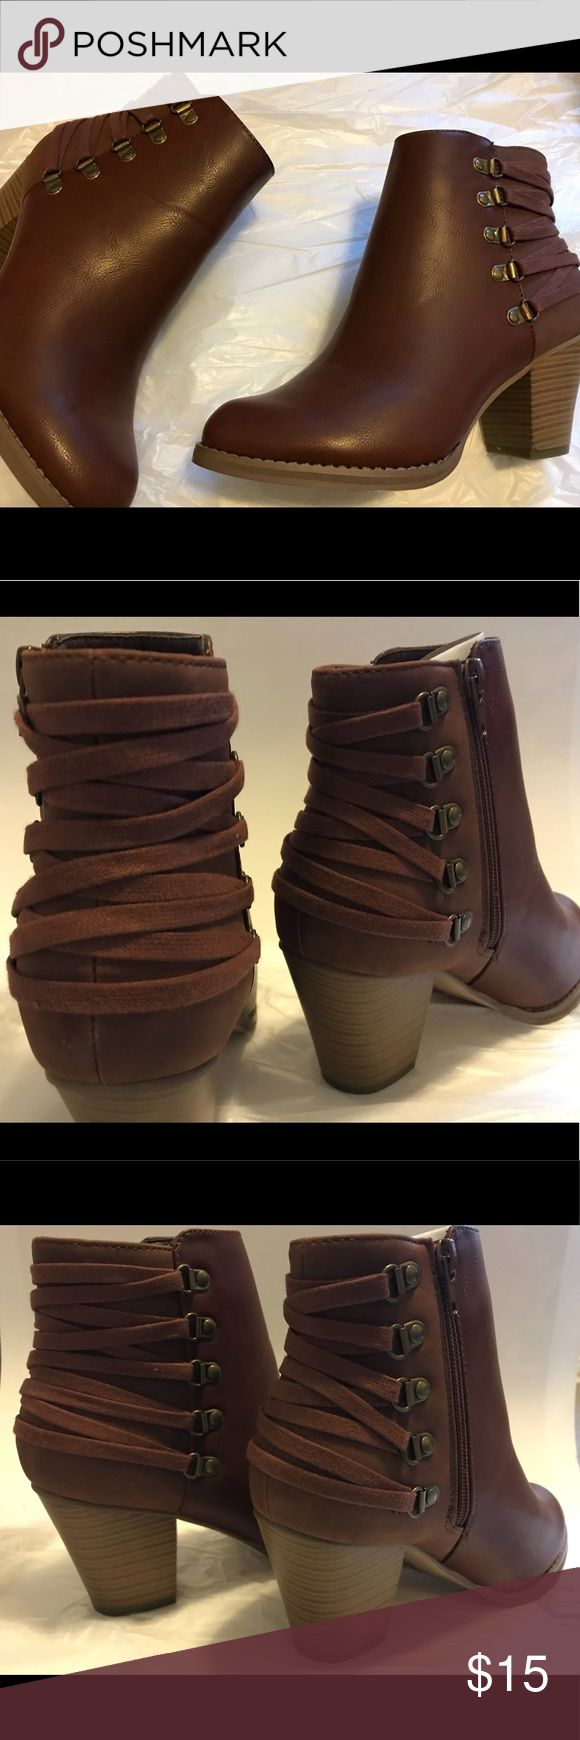 """Lace Back Booties 🔥🔥👢👢💄💄 New in box, never worn Landy Cognac US 8.5 Heel measures 3"""", platform is about 1/2"""" Smooth finish, inside zipper, adorable lace back Match these with leggings or skinny jeans and a moto jacket!! ShoeDazzle Shoes Ankle Boots & Booties"""